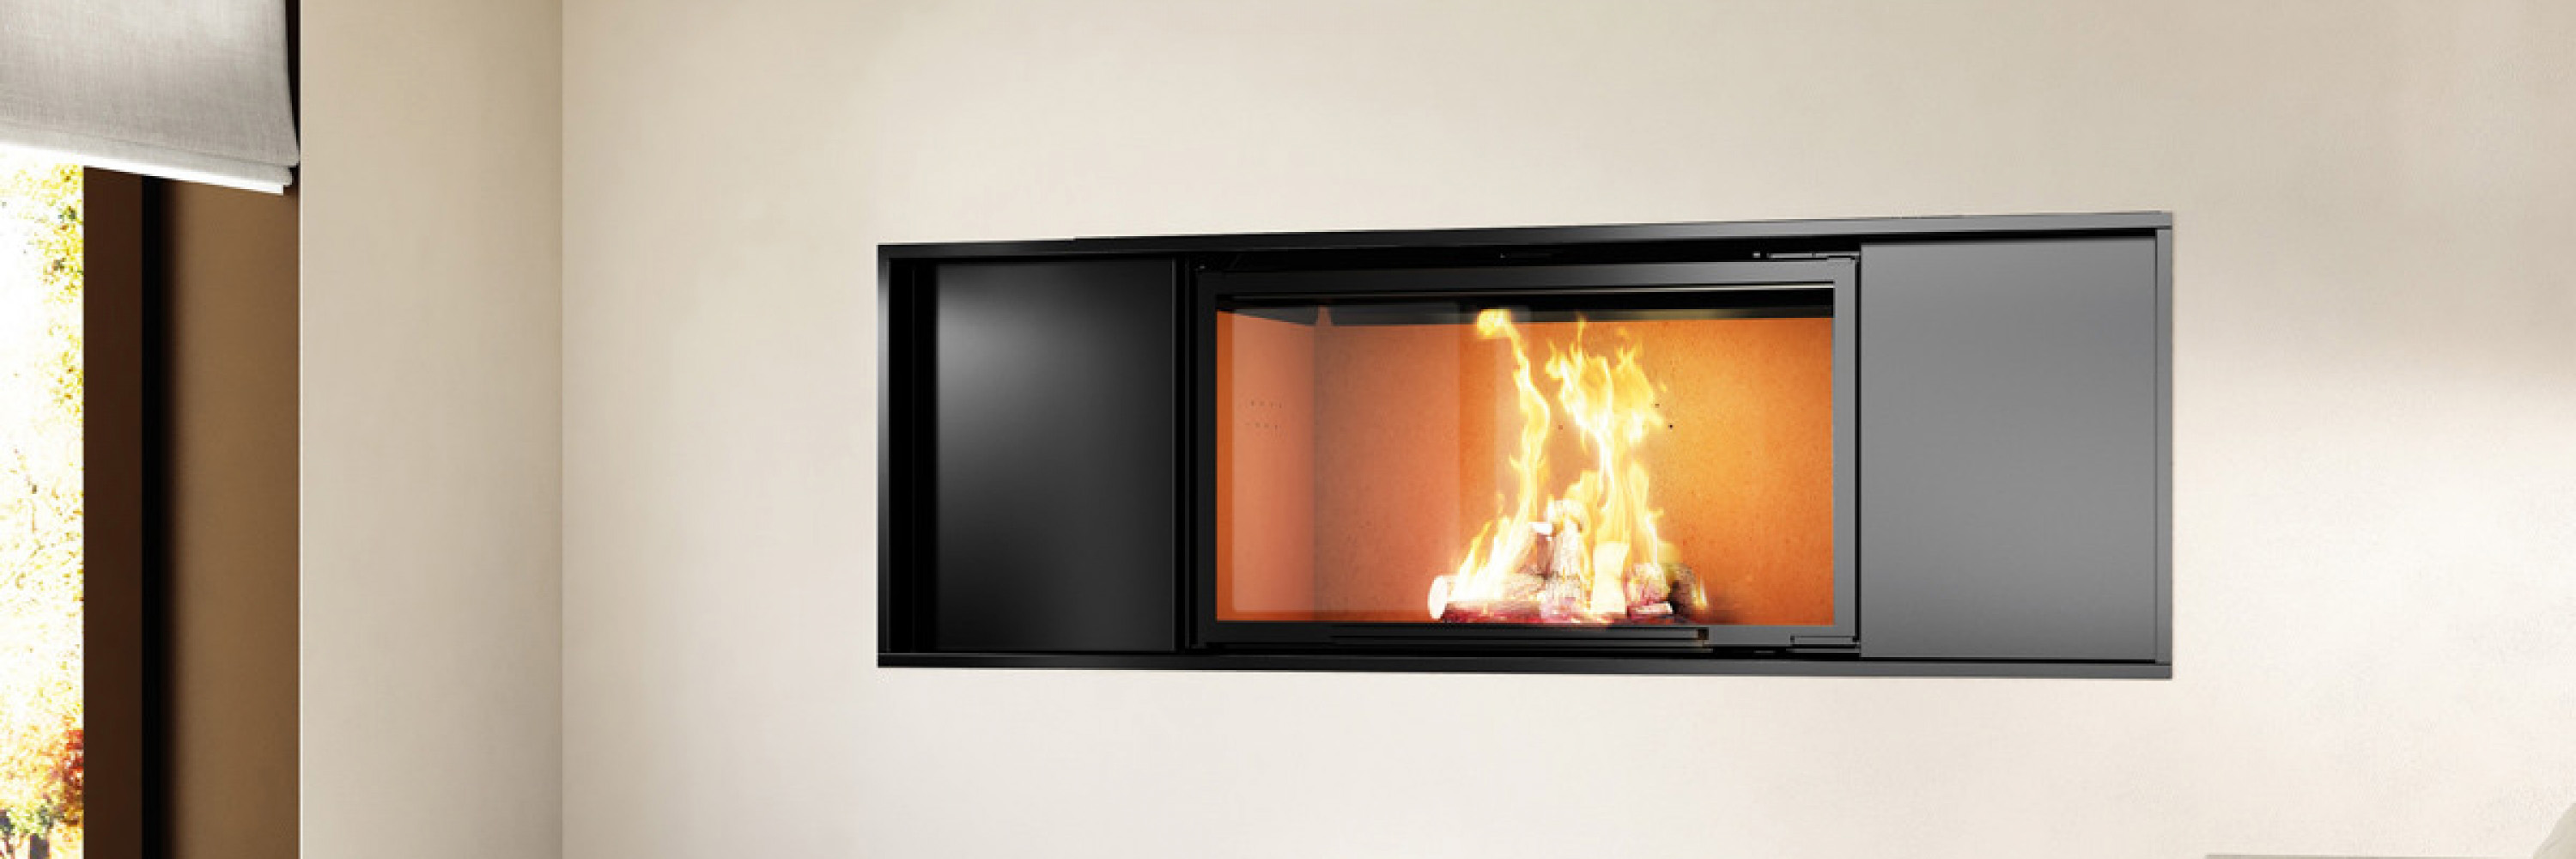 fireplaces-stoves-axis-home